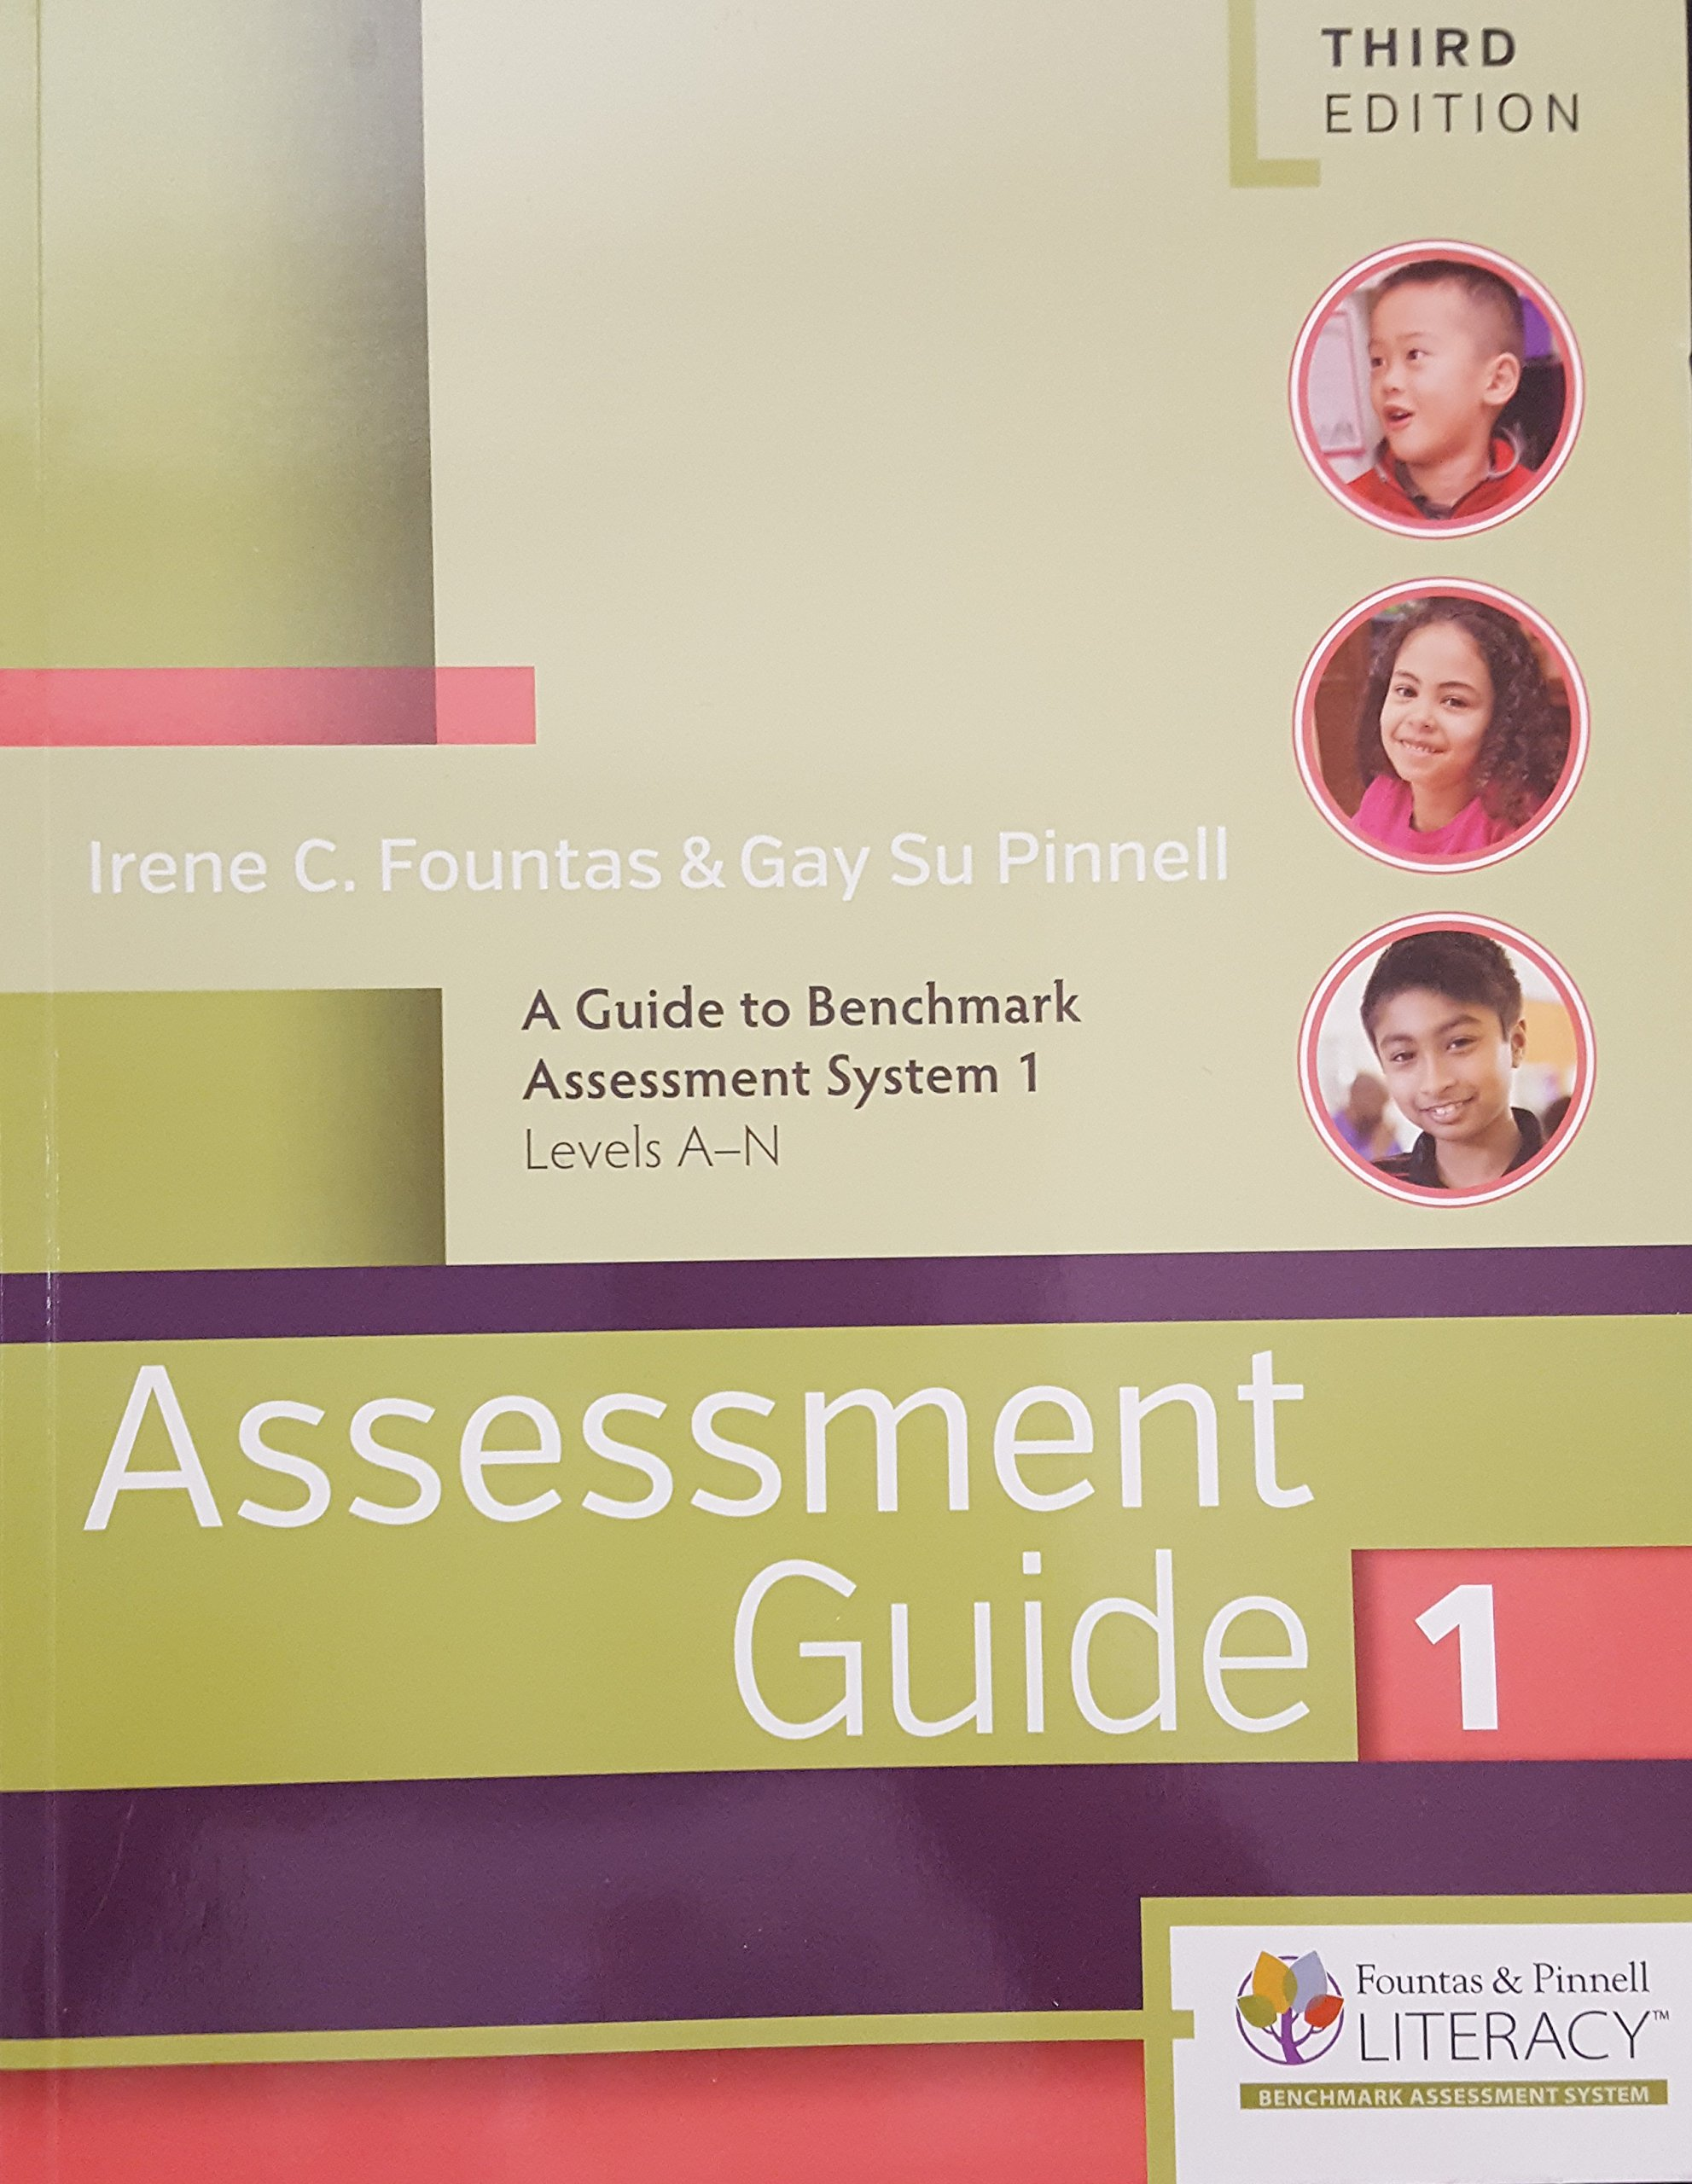 Assessment Guide 1 A Guide To Benchmark Assessment System 1 Levels A N 9780325080635 0325080631 2017 Amazon Com Books You can use the result to help you find content on our website that is appropriate for your english language. benchmark assessment system